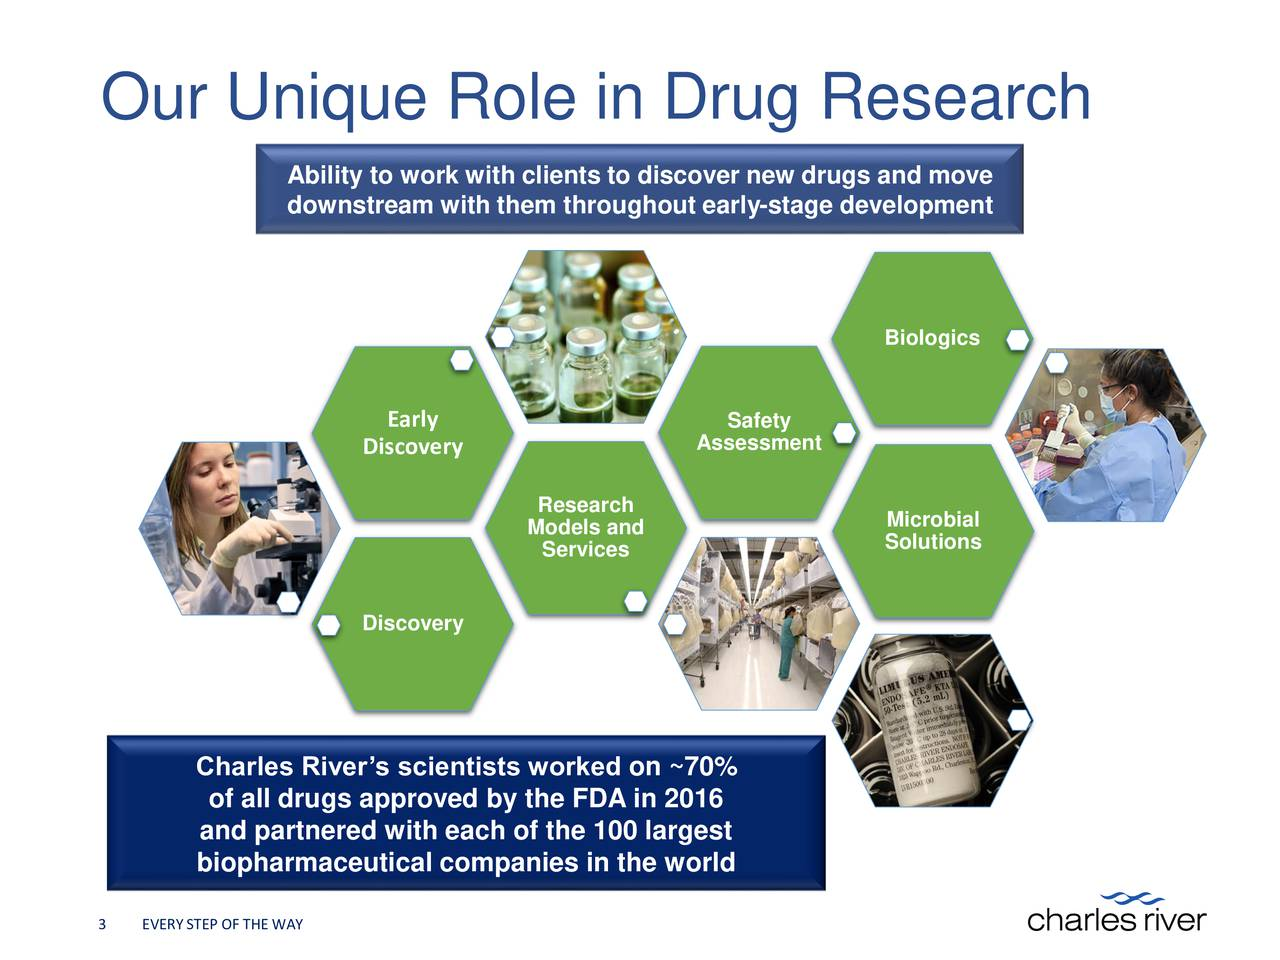 Ability to work with clients to discover new drugs and move downstream with them throughout early-stage development Biologics Early Safety Discovery Assessment Research Models and Microbial Services Solutions Discovery Charles Rivers scientists worked on ~70% of all drugs approved by the FDA in 2016 and partnered with each of the 100 largest biopharmaceutical companies in the world 3 EVERYSTEP OF THE WAY